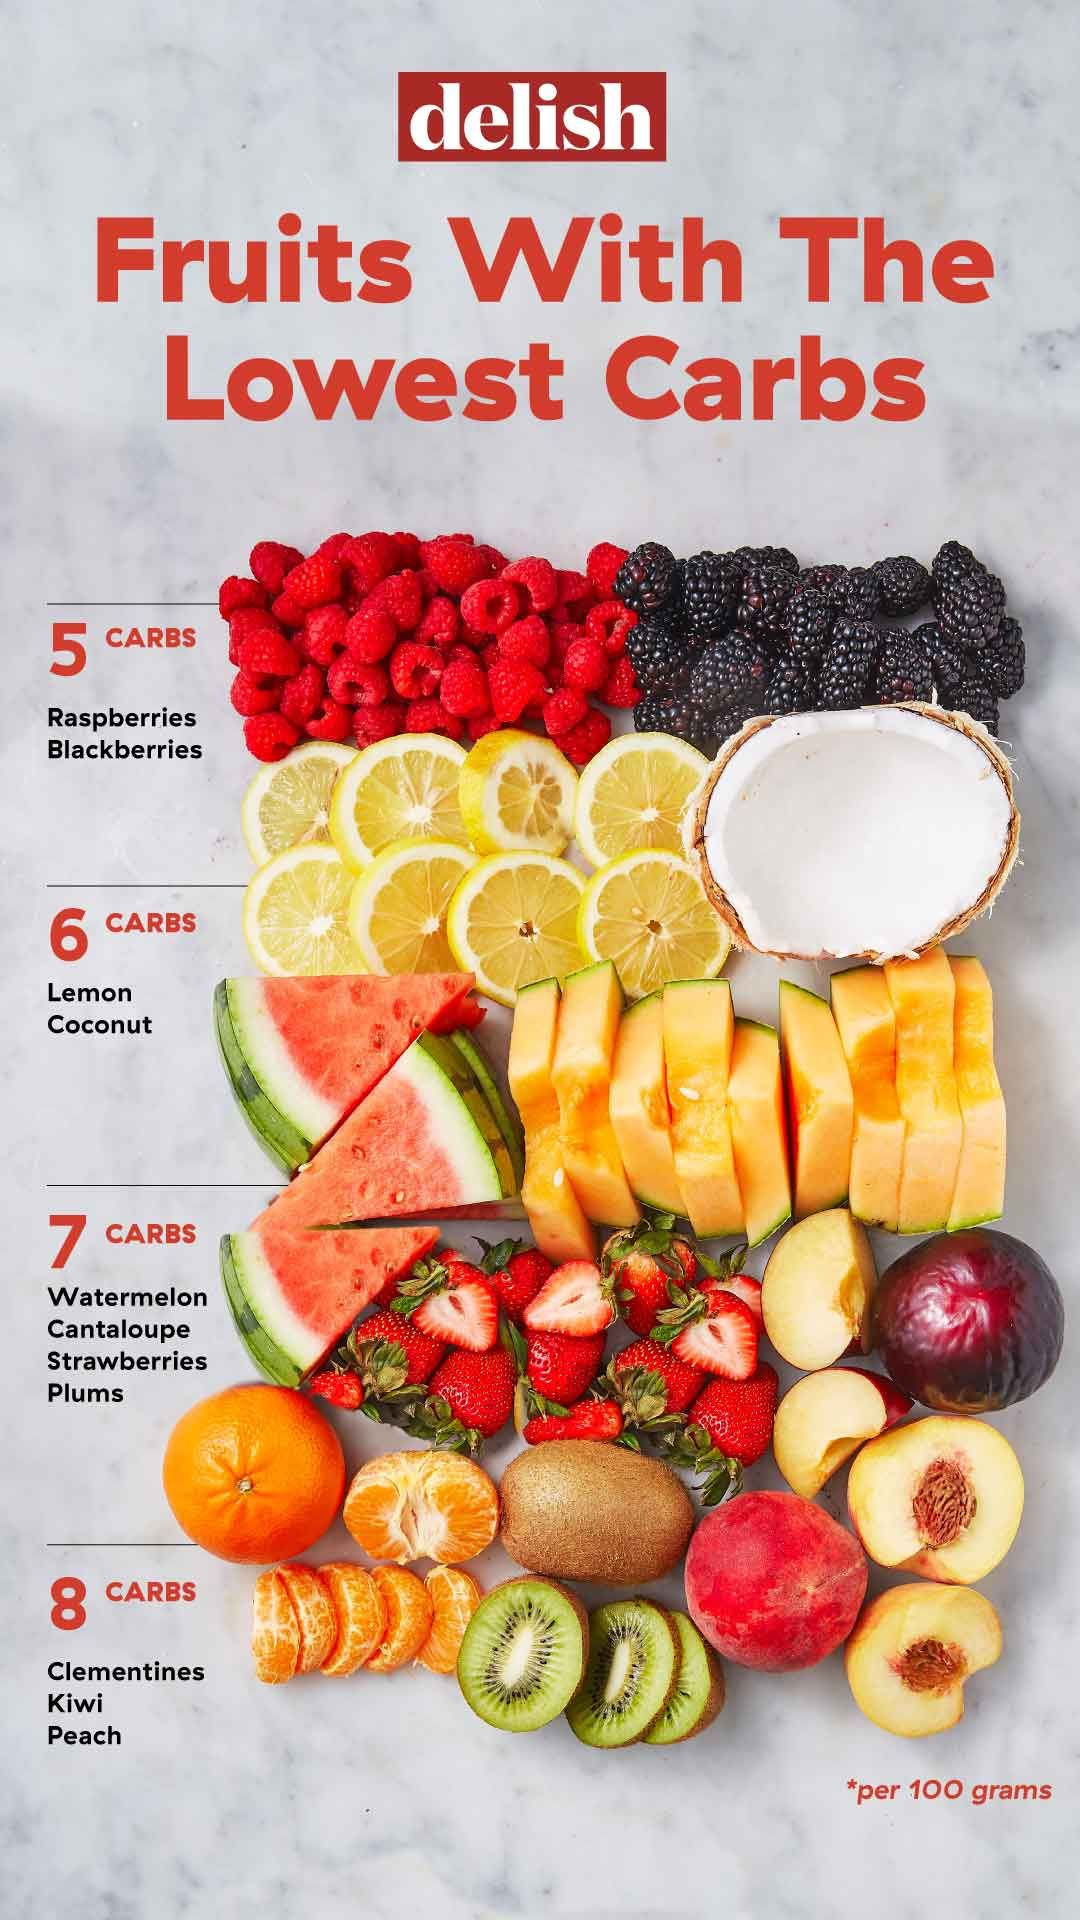 Fruits And Berries With The Lowest Carbs